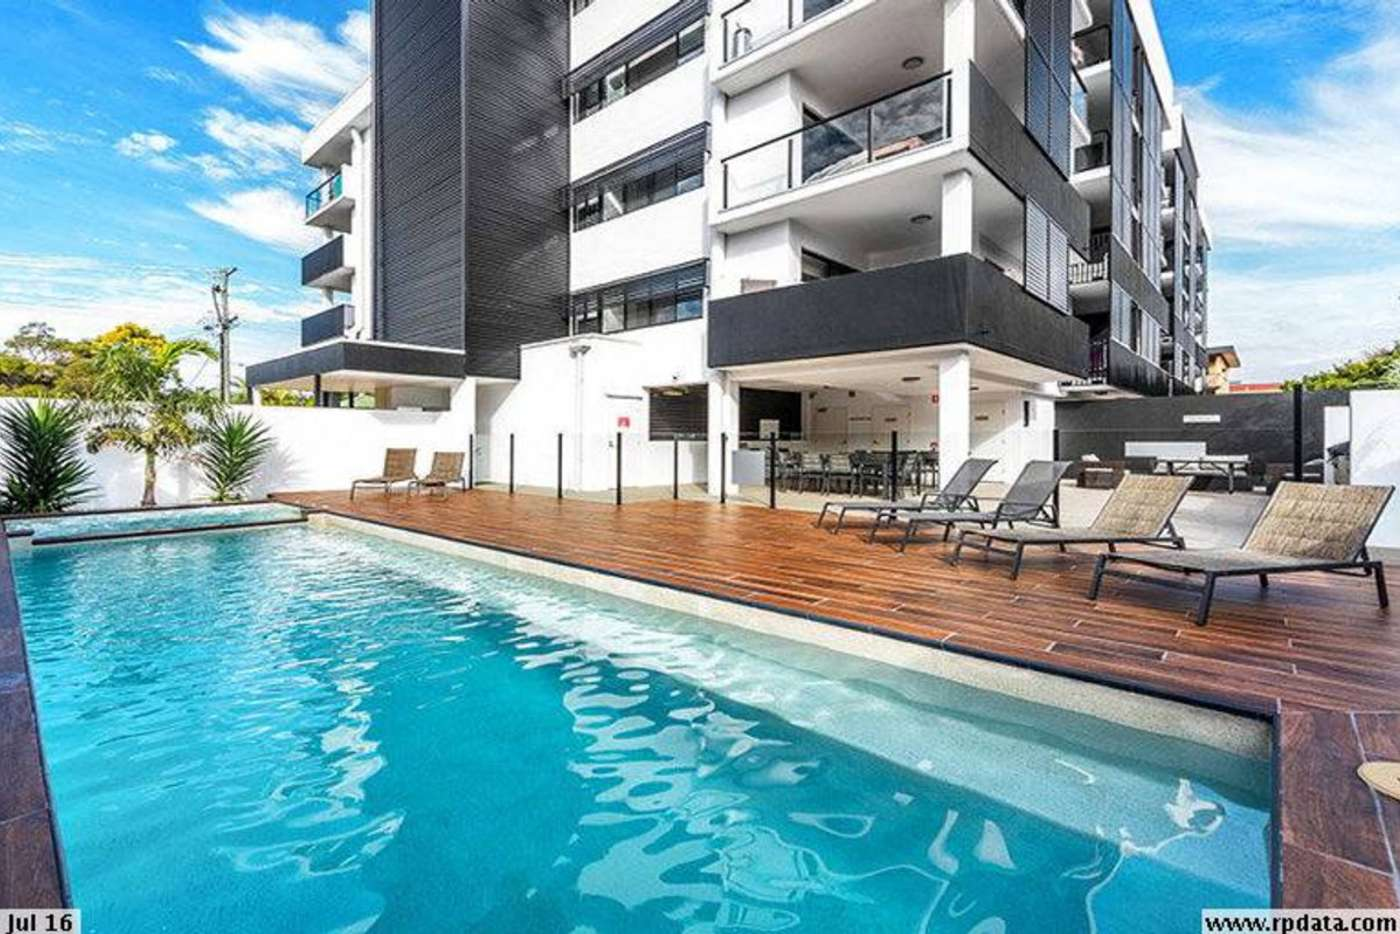 Main view of Homely apartment listing, 120 Melton Road, Nundah QLD 4012